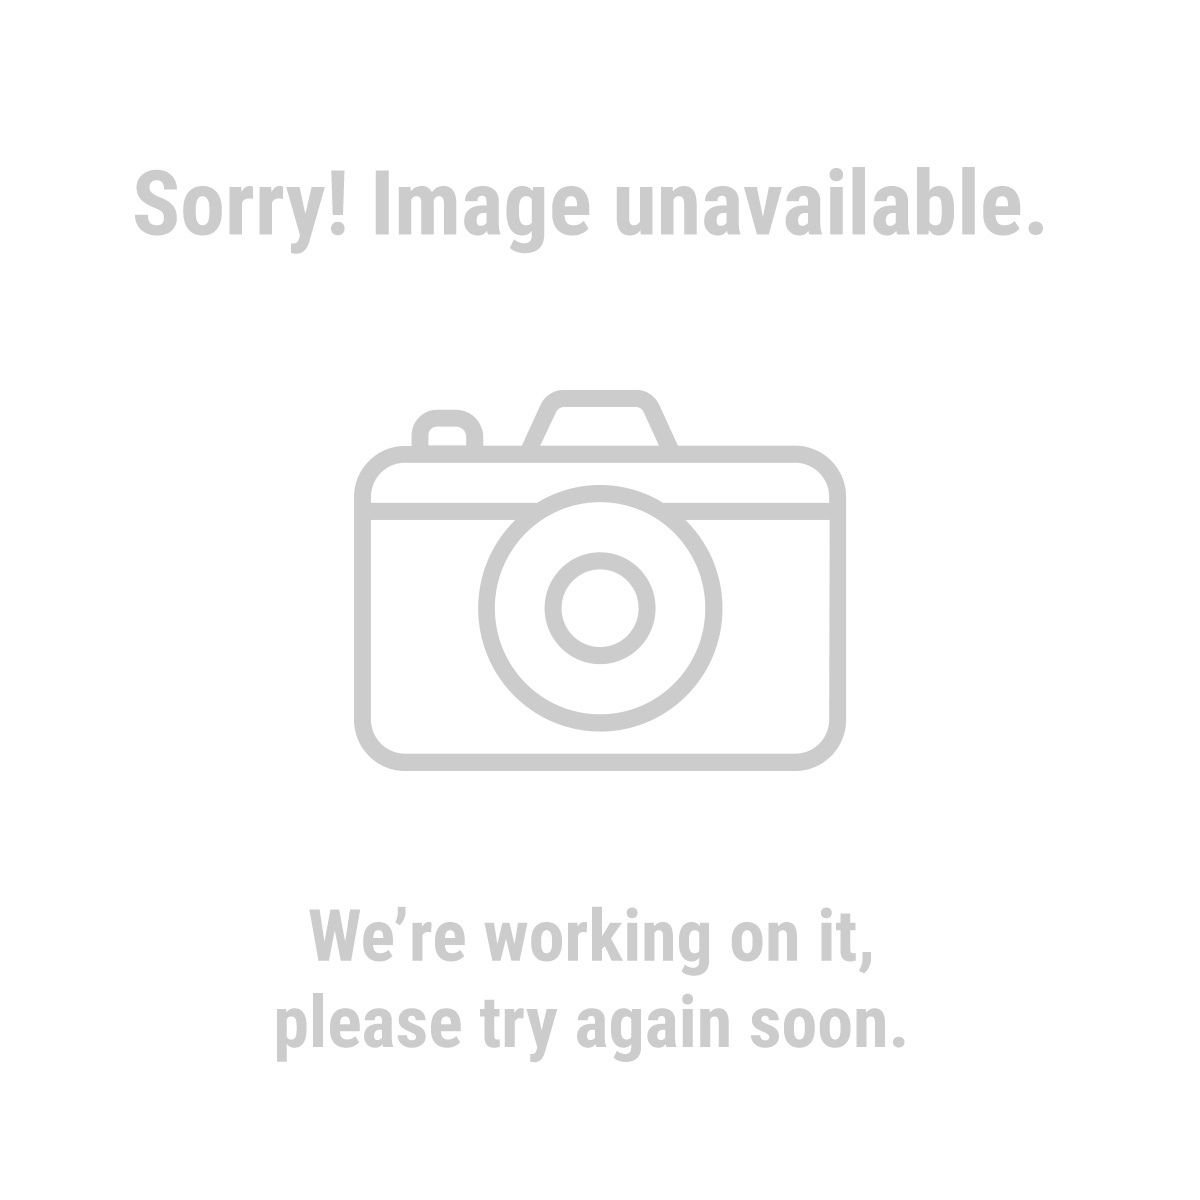 Western Safety 96612 Water-Resistant Cold Weather Work Gloves, X-Large